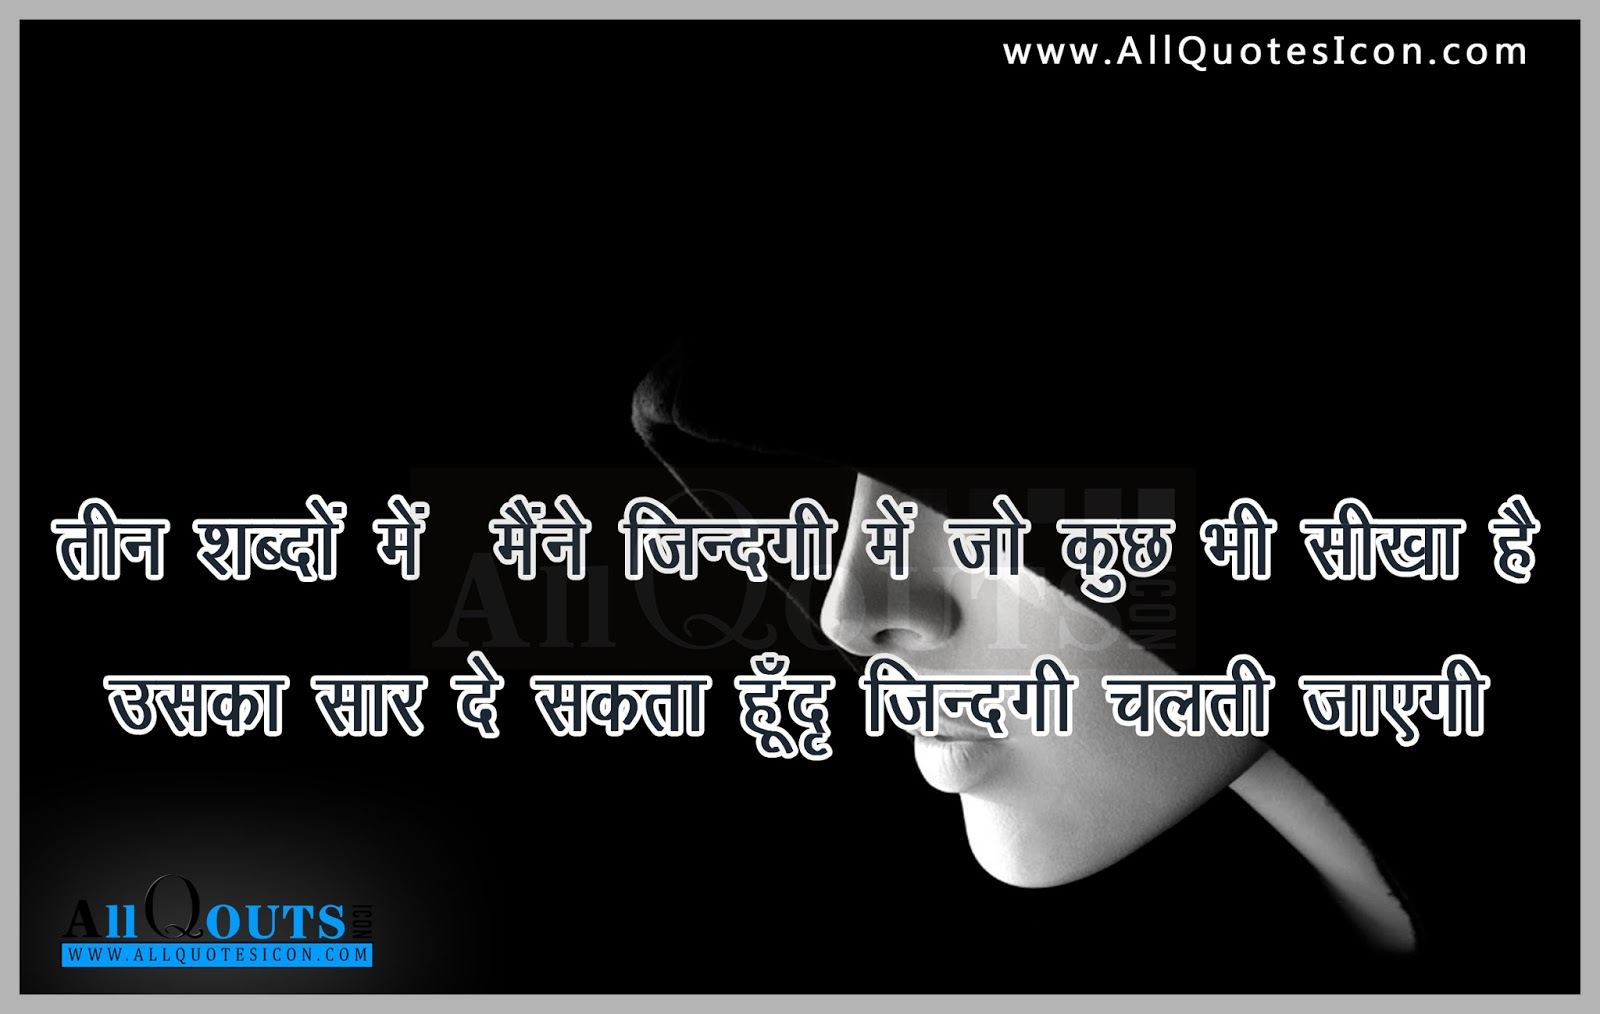 Best Life Quotes Best Life Quotes And Thoughts In Hindi  Www.allquotesicon